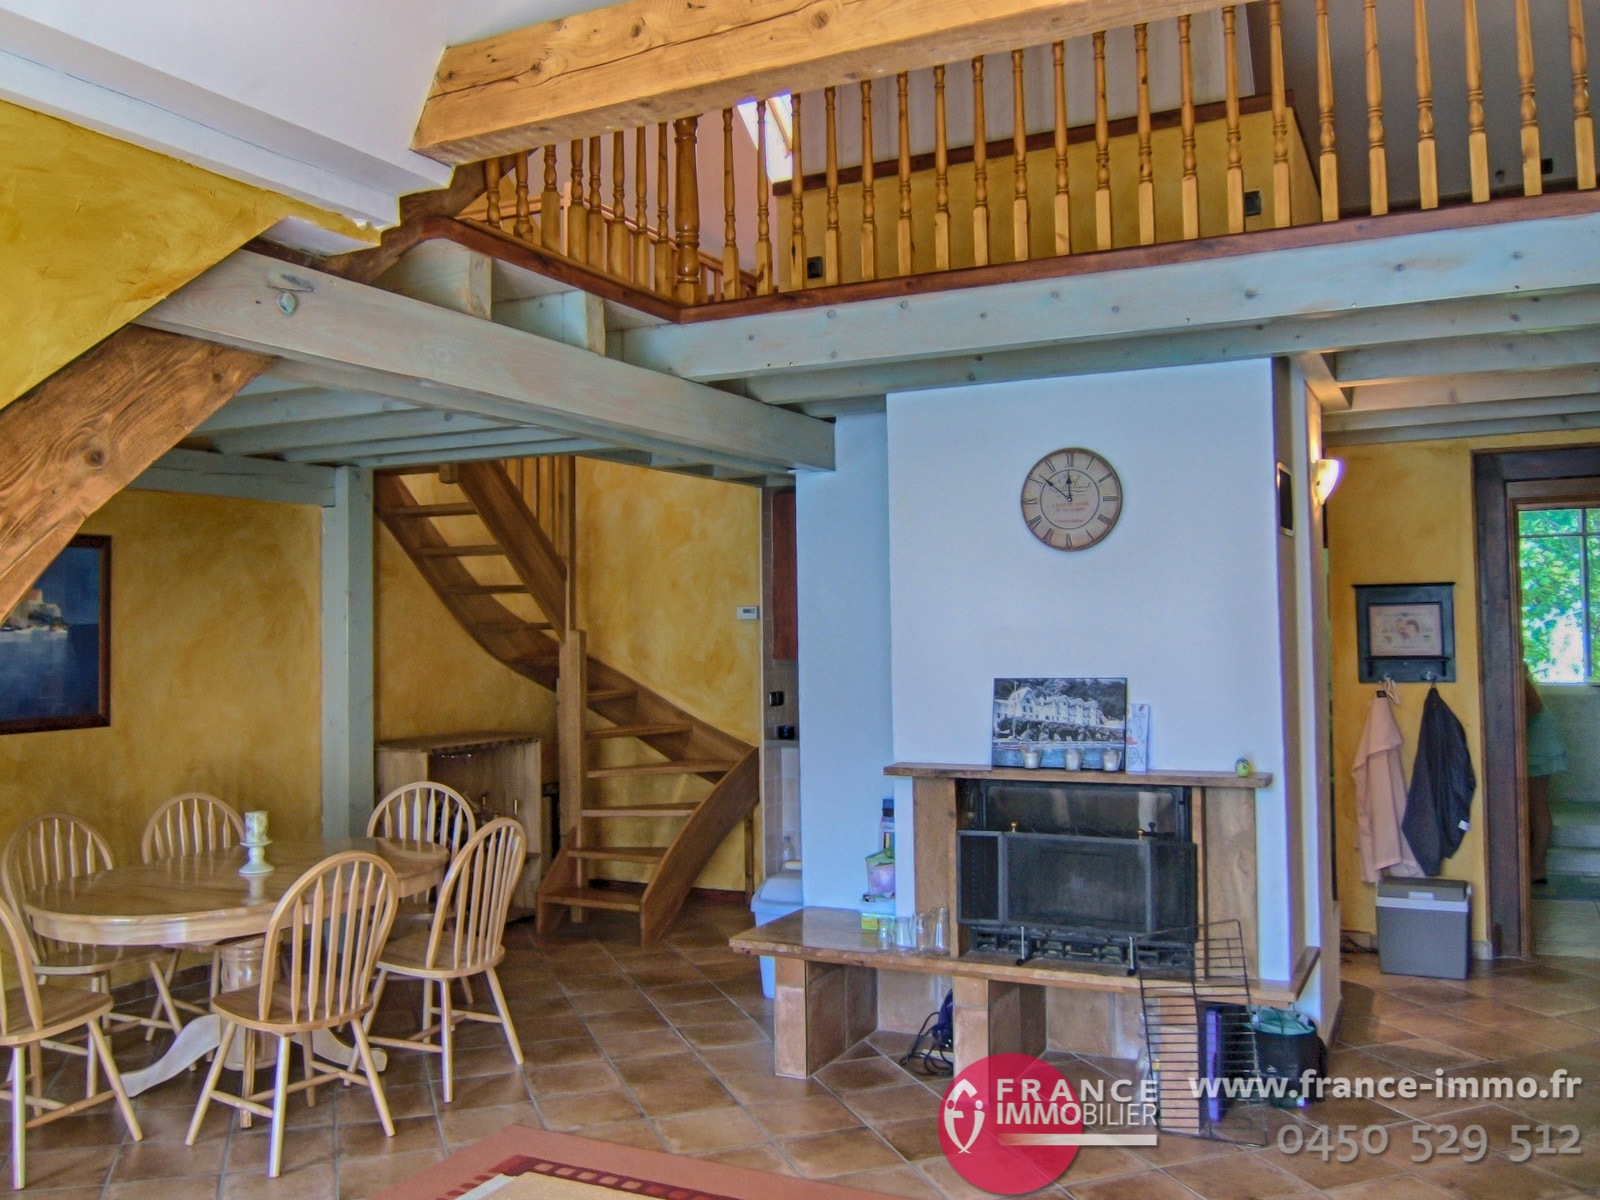 Vente appartement annecy 74000 85m avec 3 pi ce s for Achat maison annecy